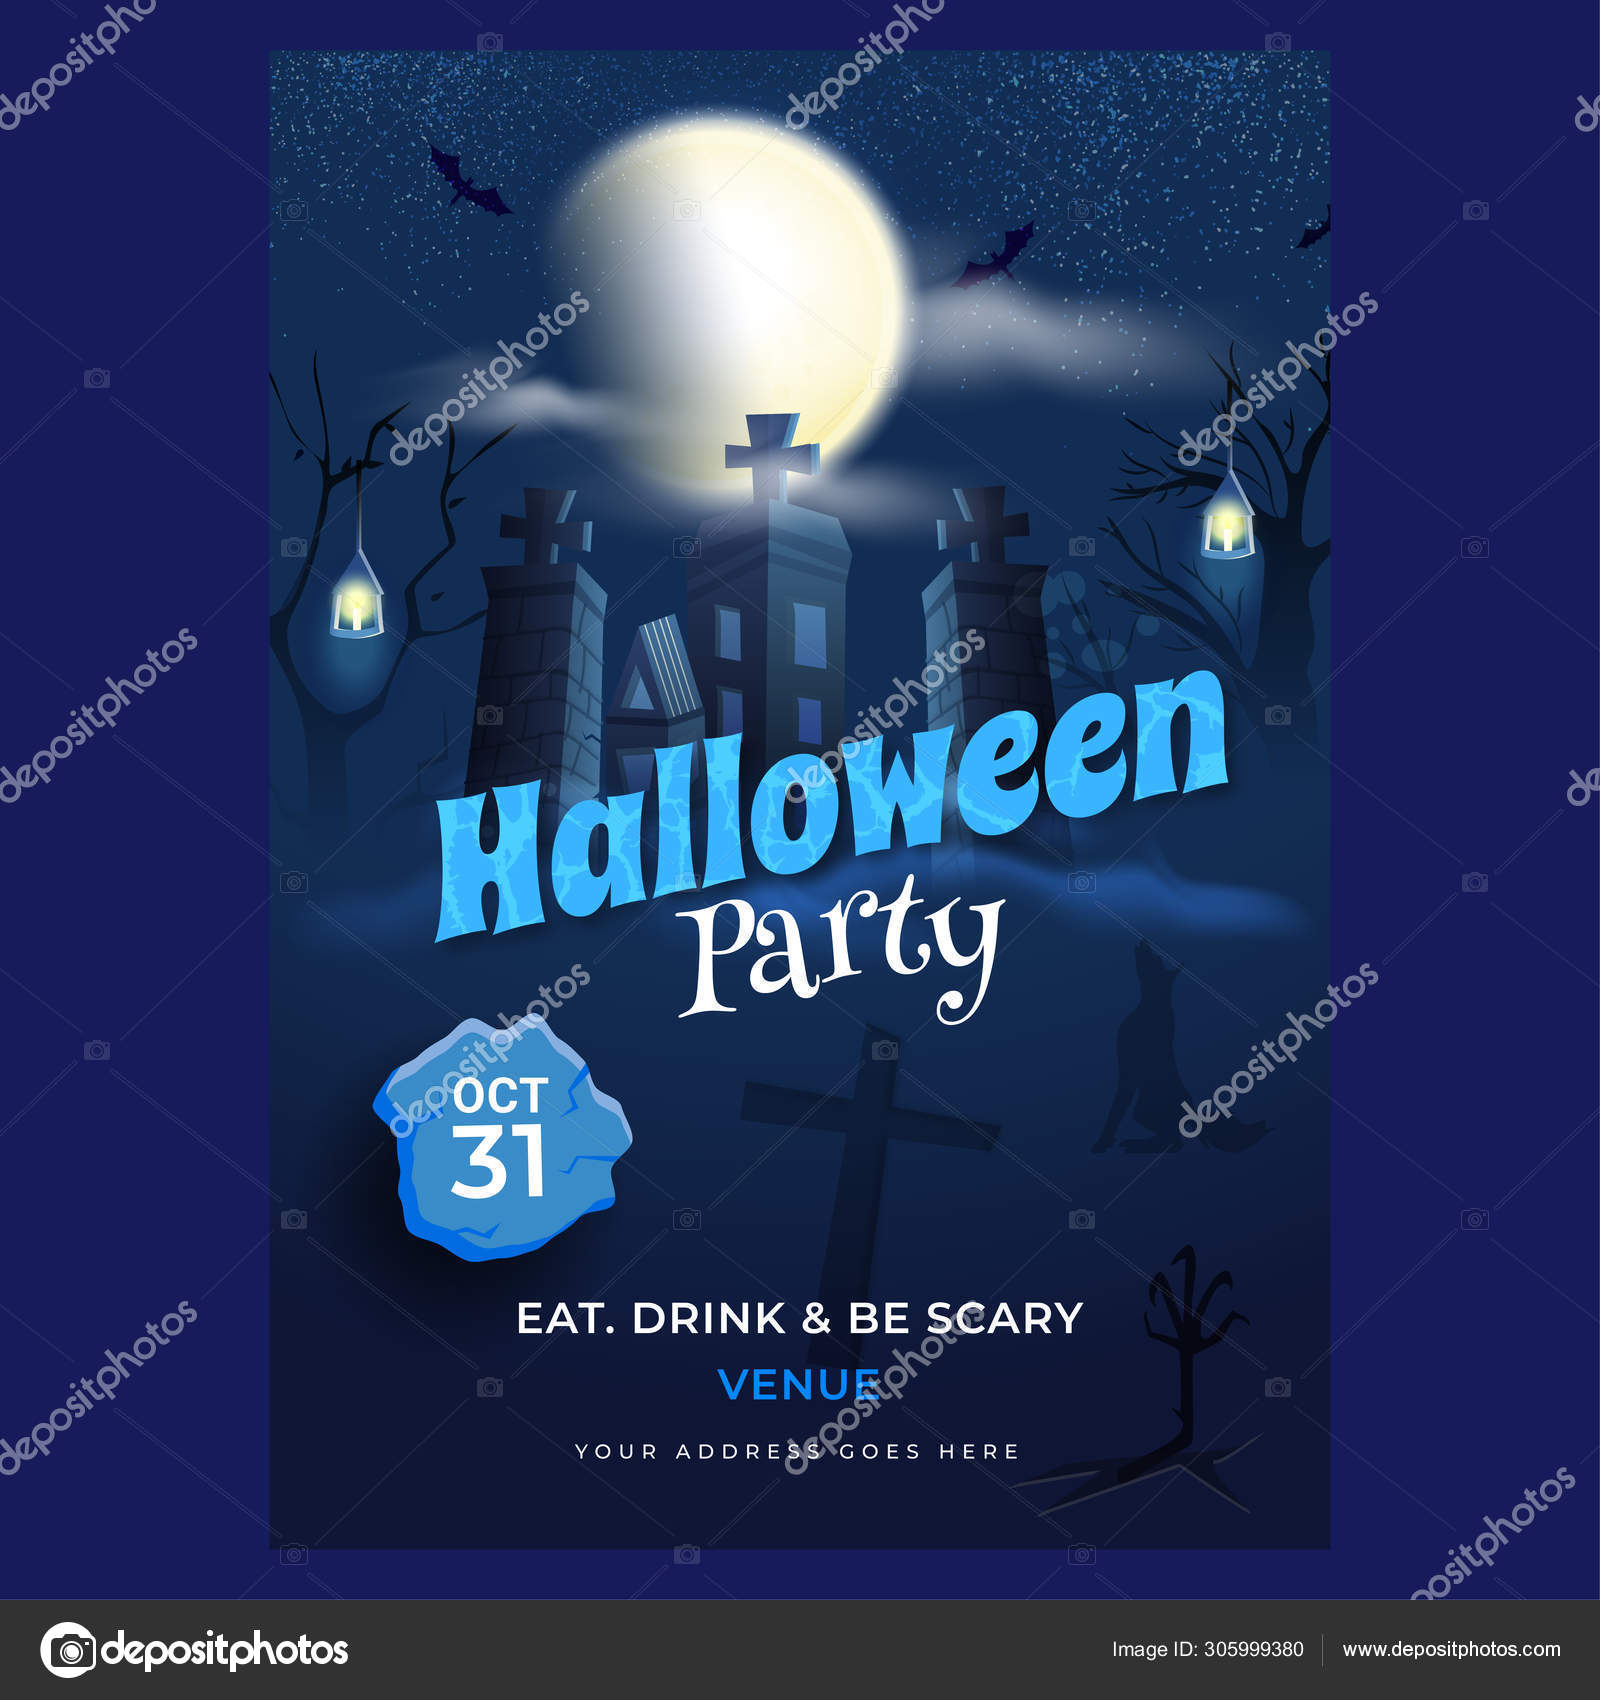 Halloween Party Invitation Card Design With Haunted House